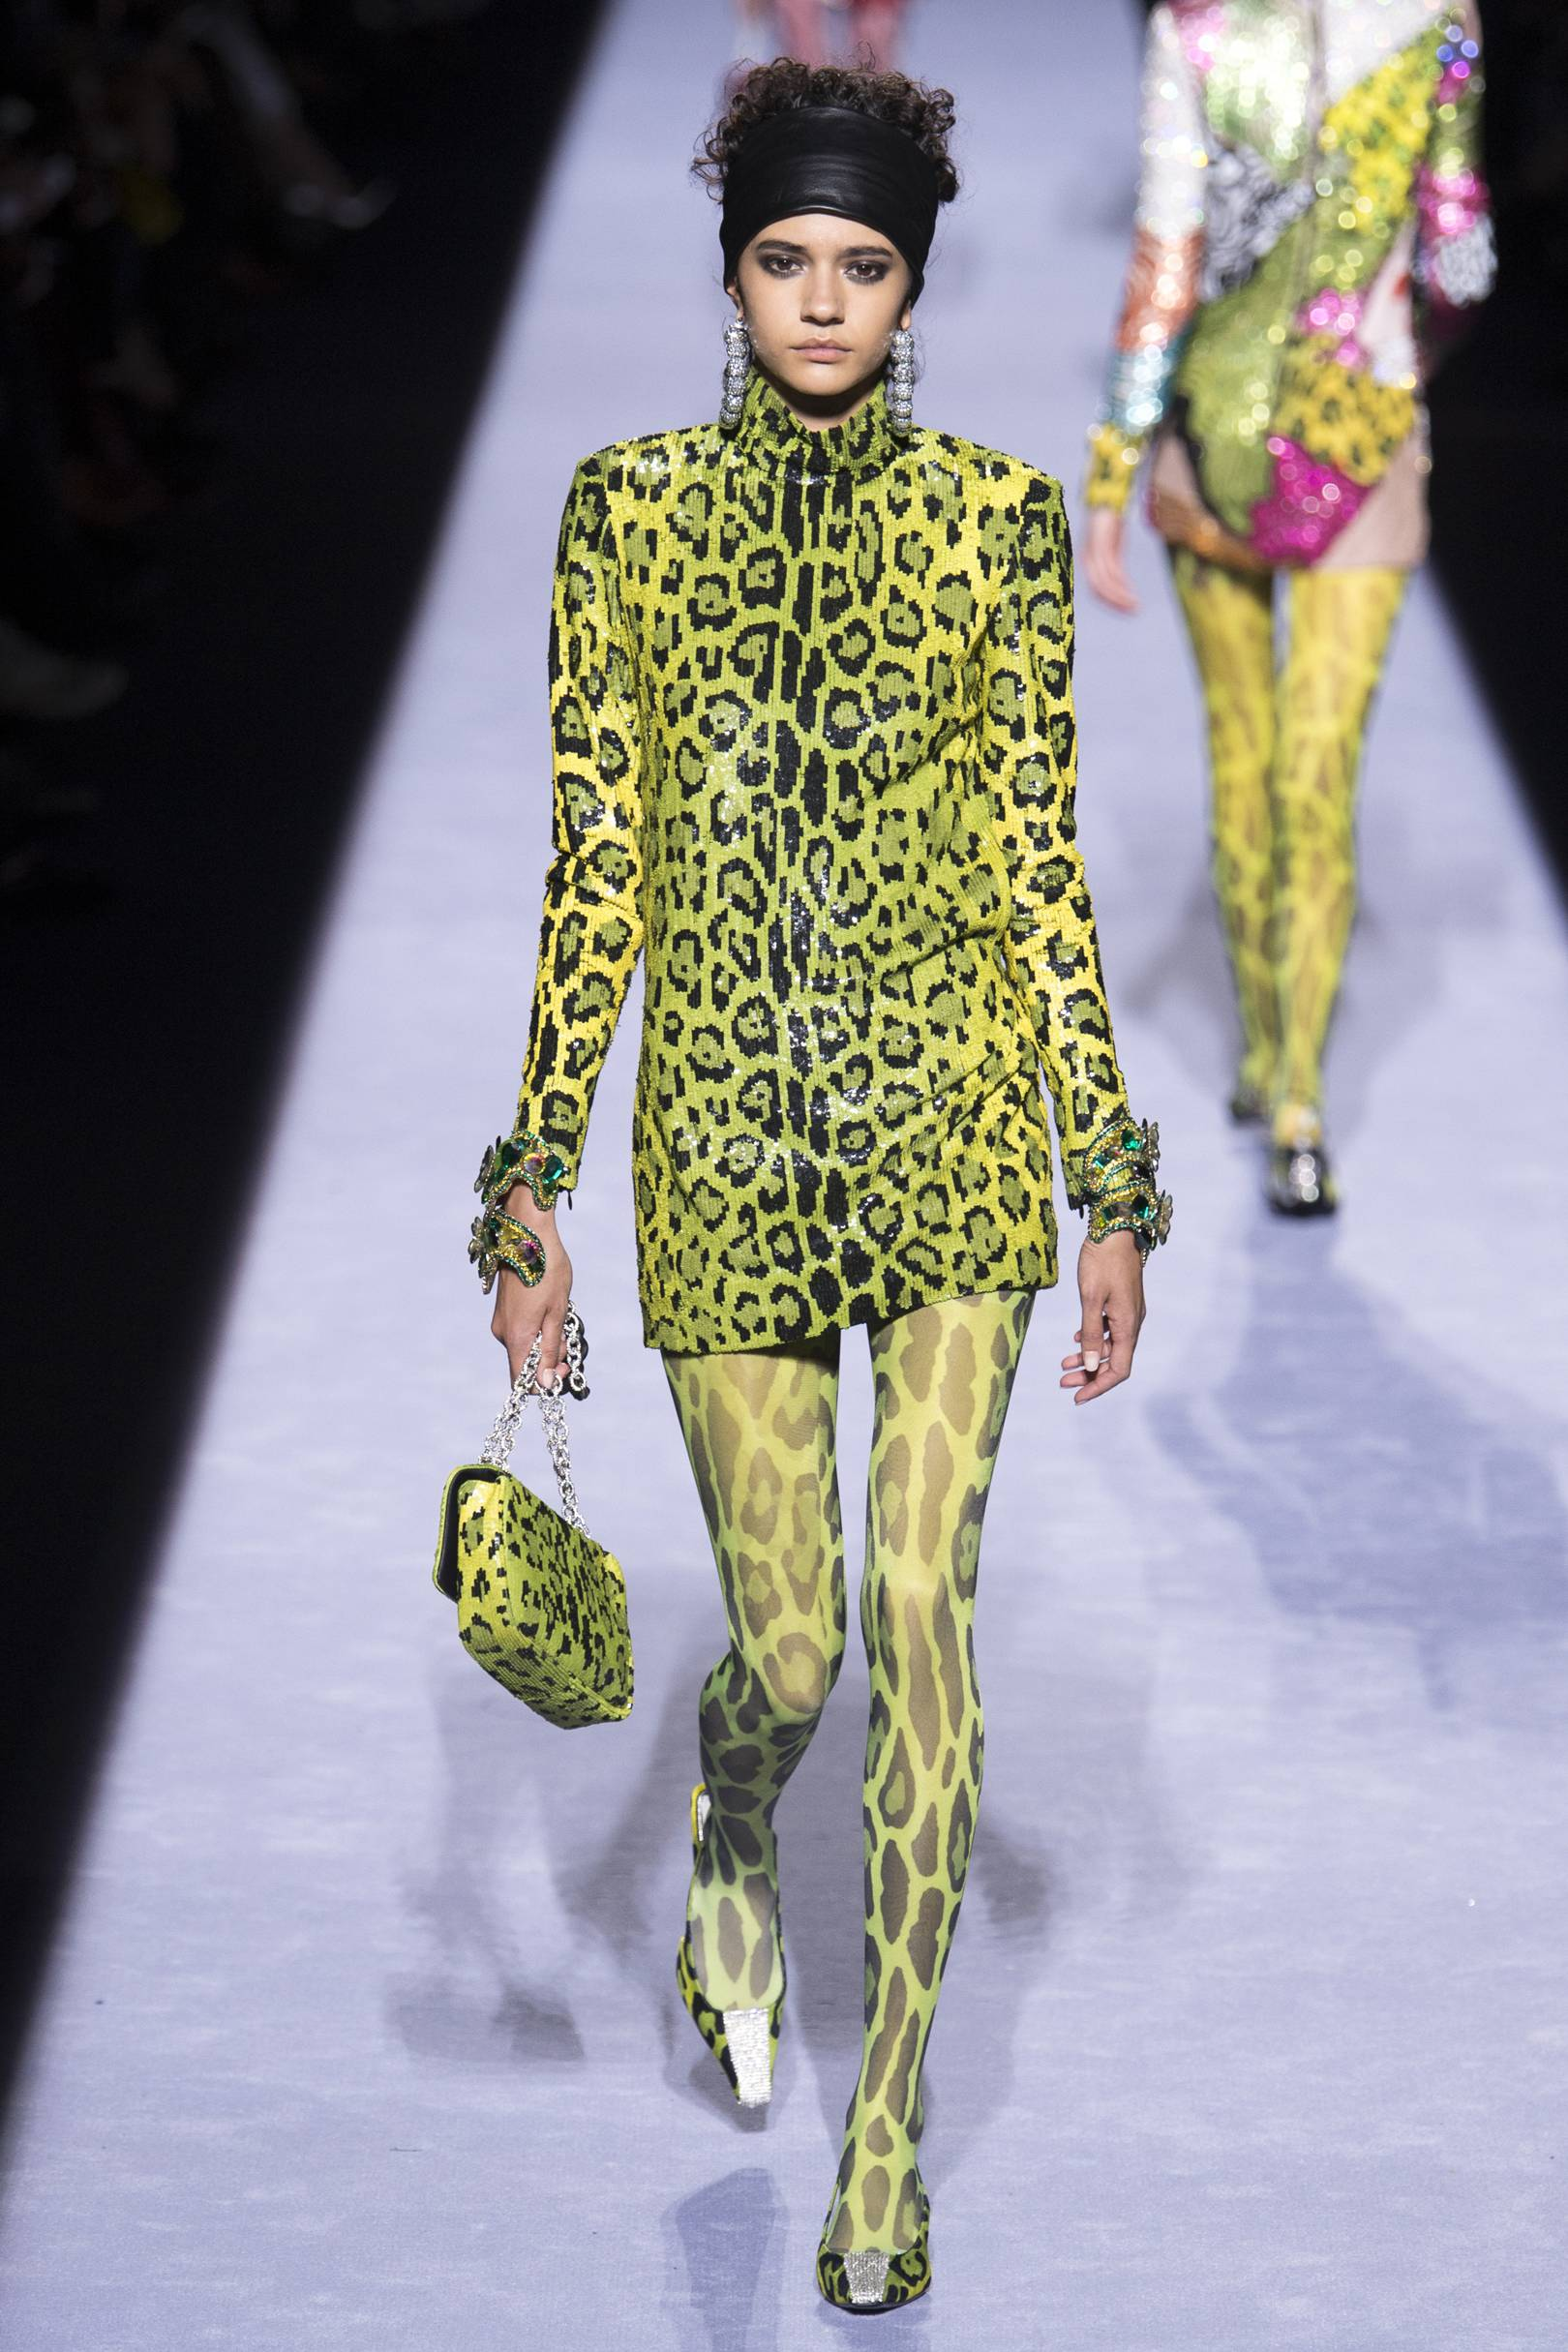 48e53ee0982fcf Autumn/Winter 2018 Trend: Animal Print | British Vogue